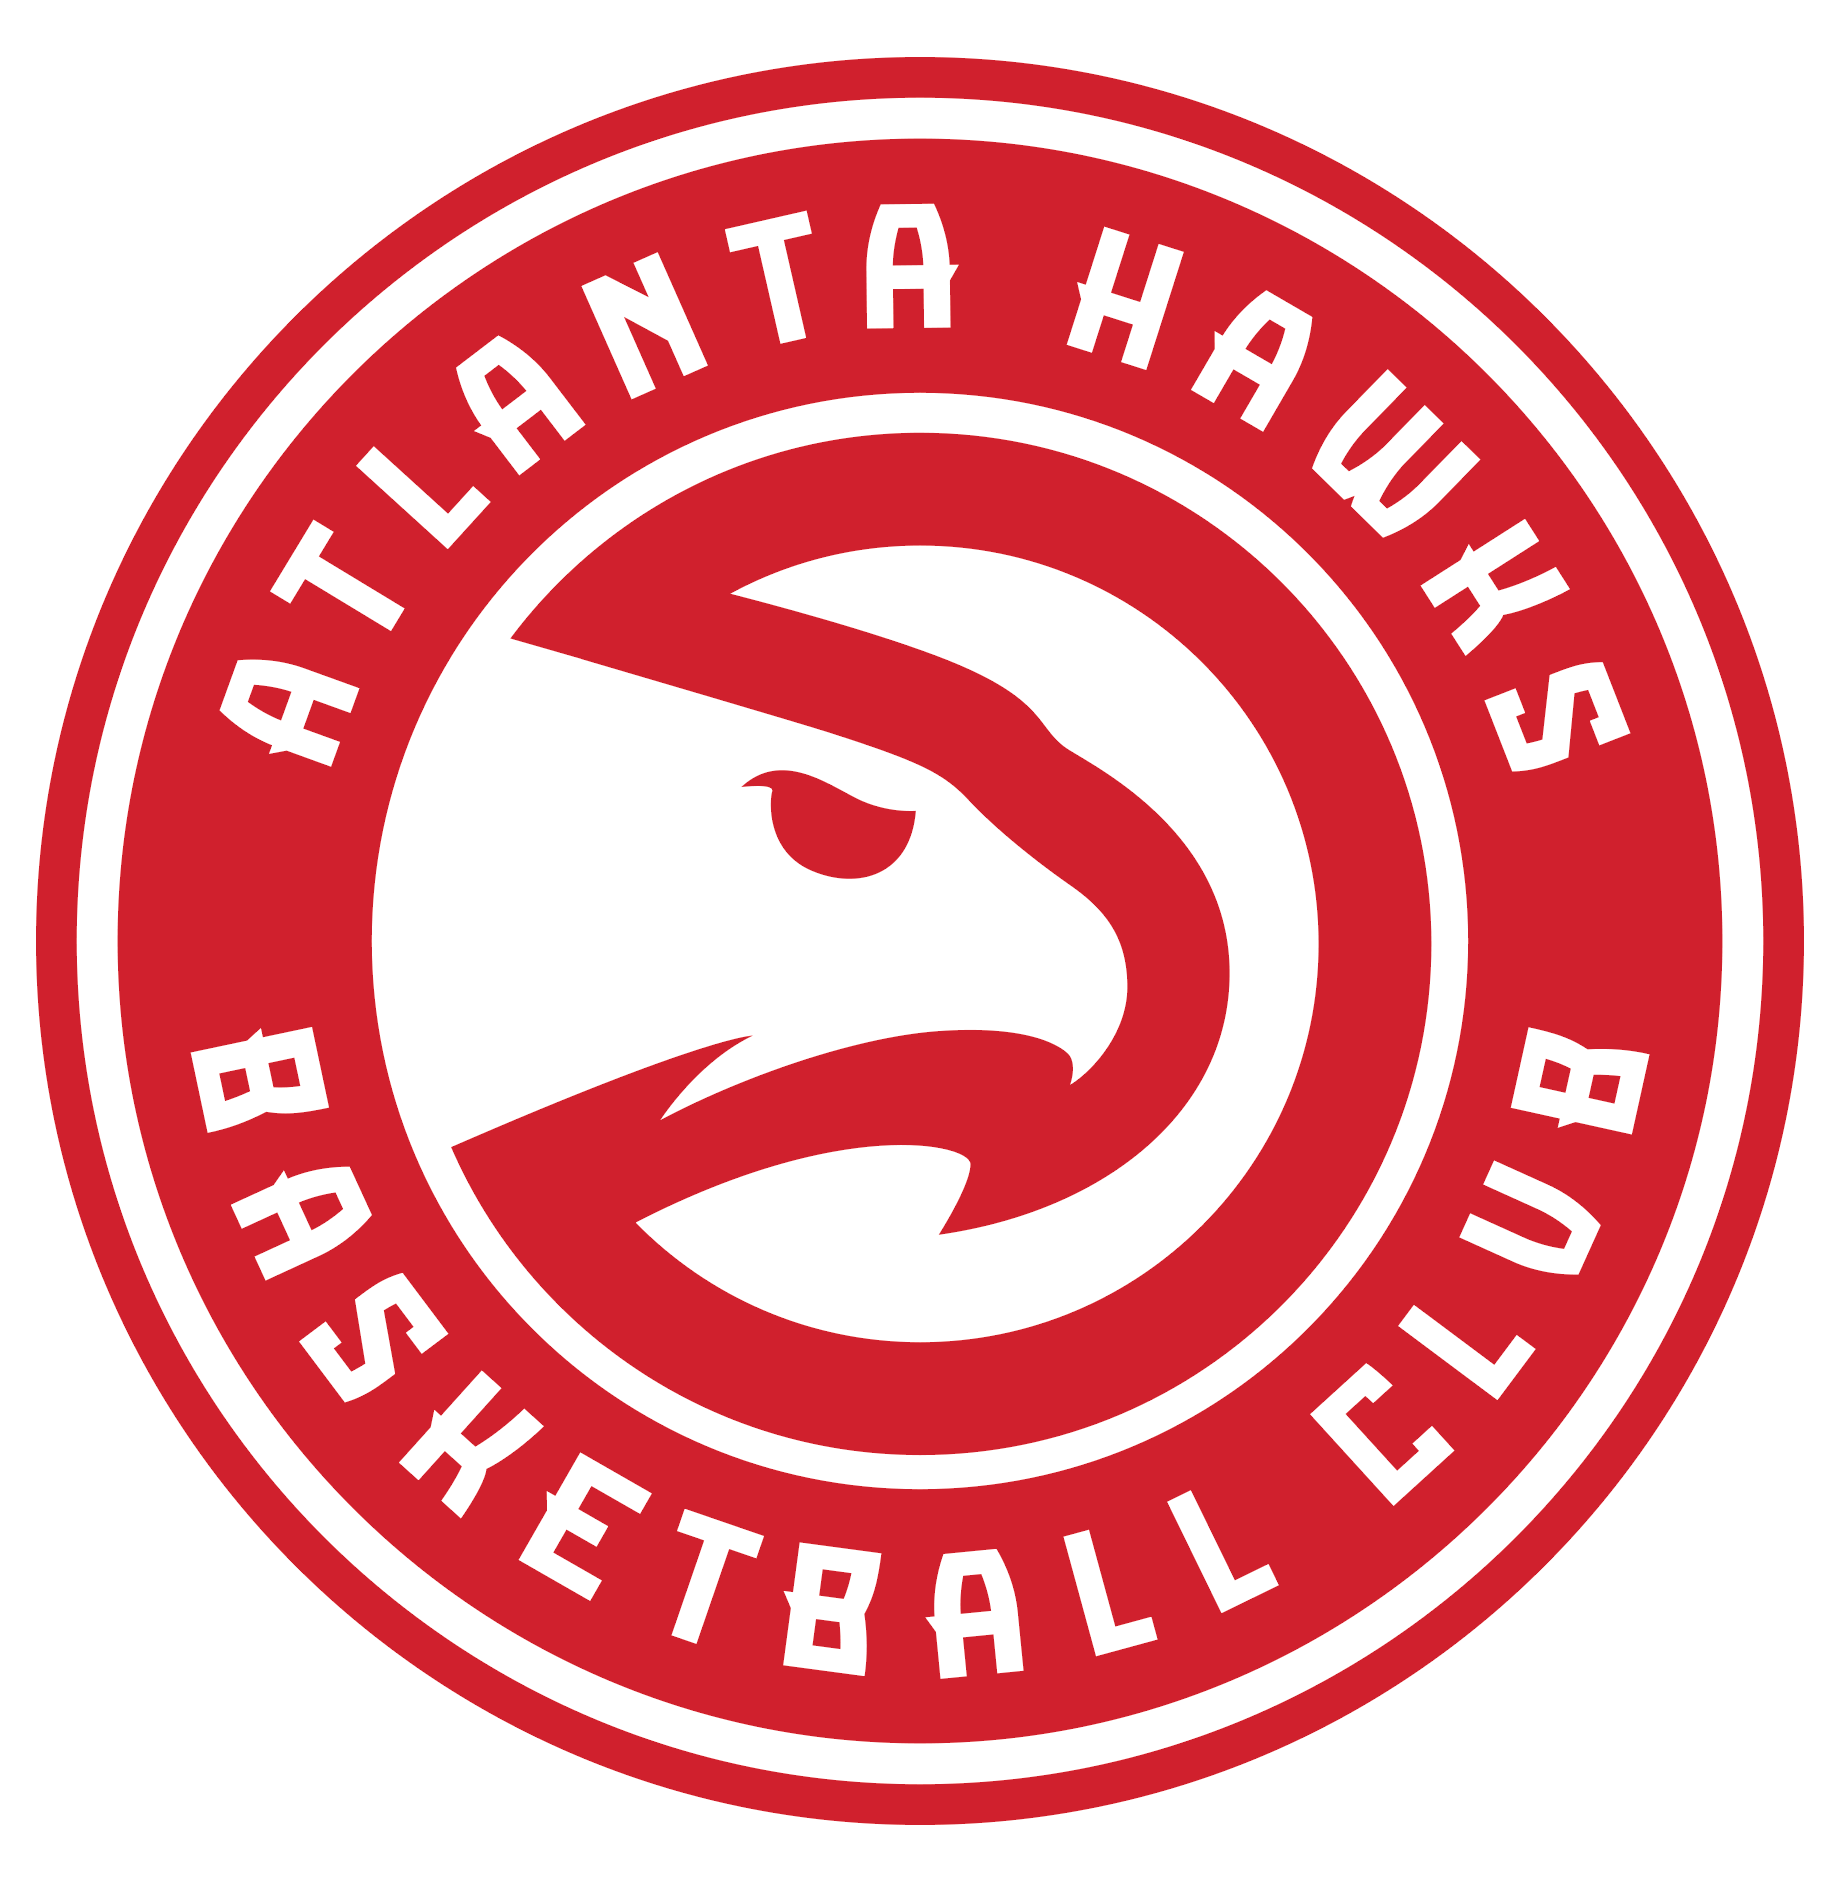 Jersey Vector Atlanta Hawks Transparent & PNG Clipart Free Download